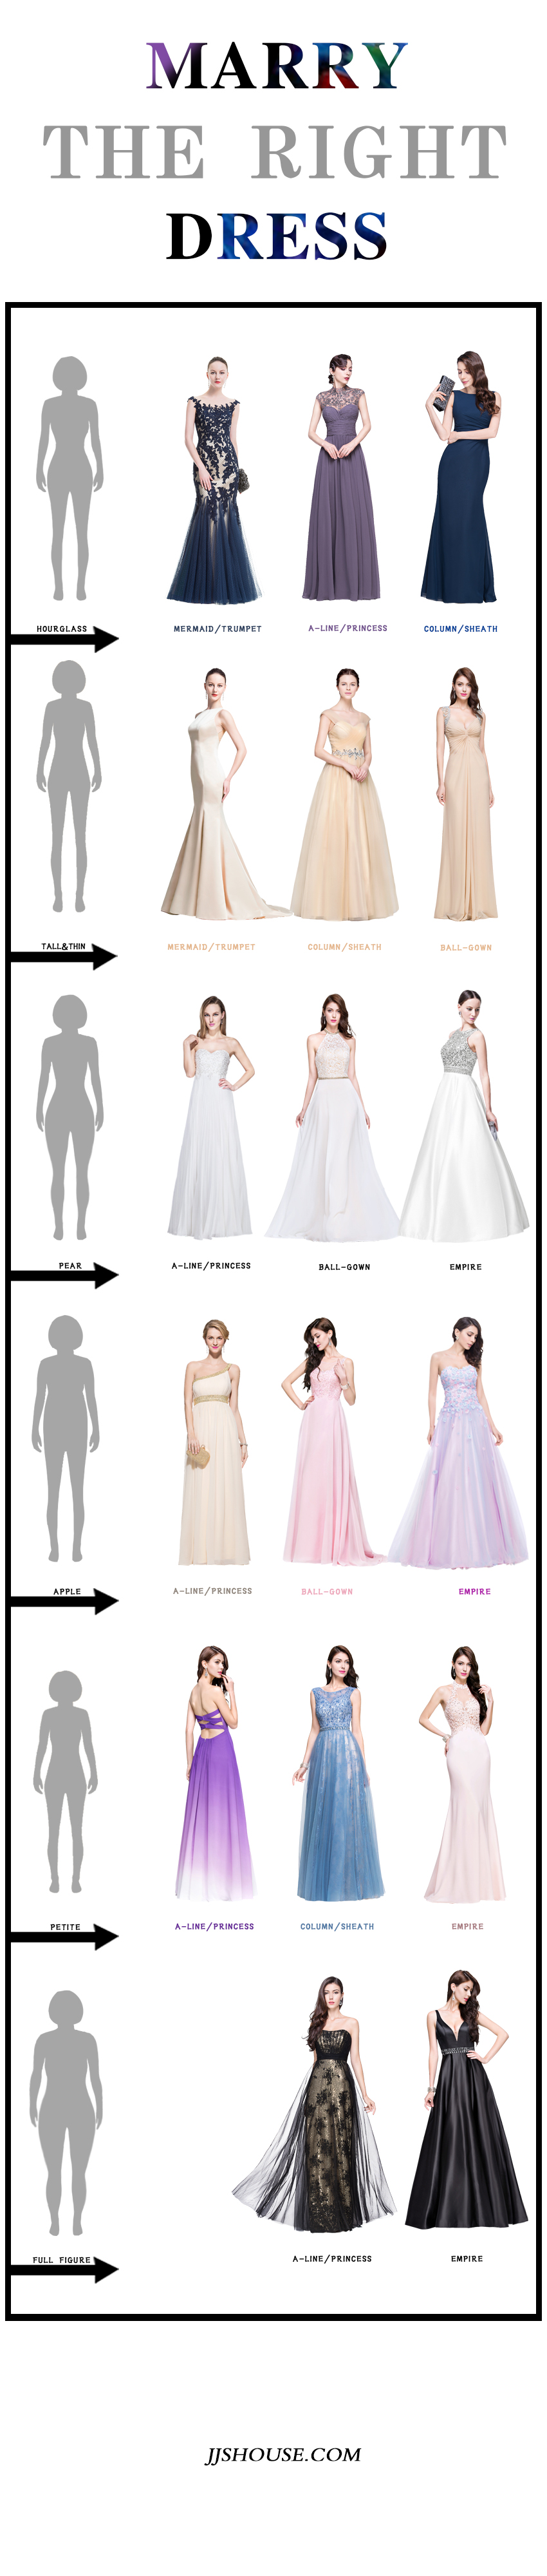 f0466c4eefd5 How To Select Best Dress Your Body Type